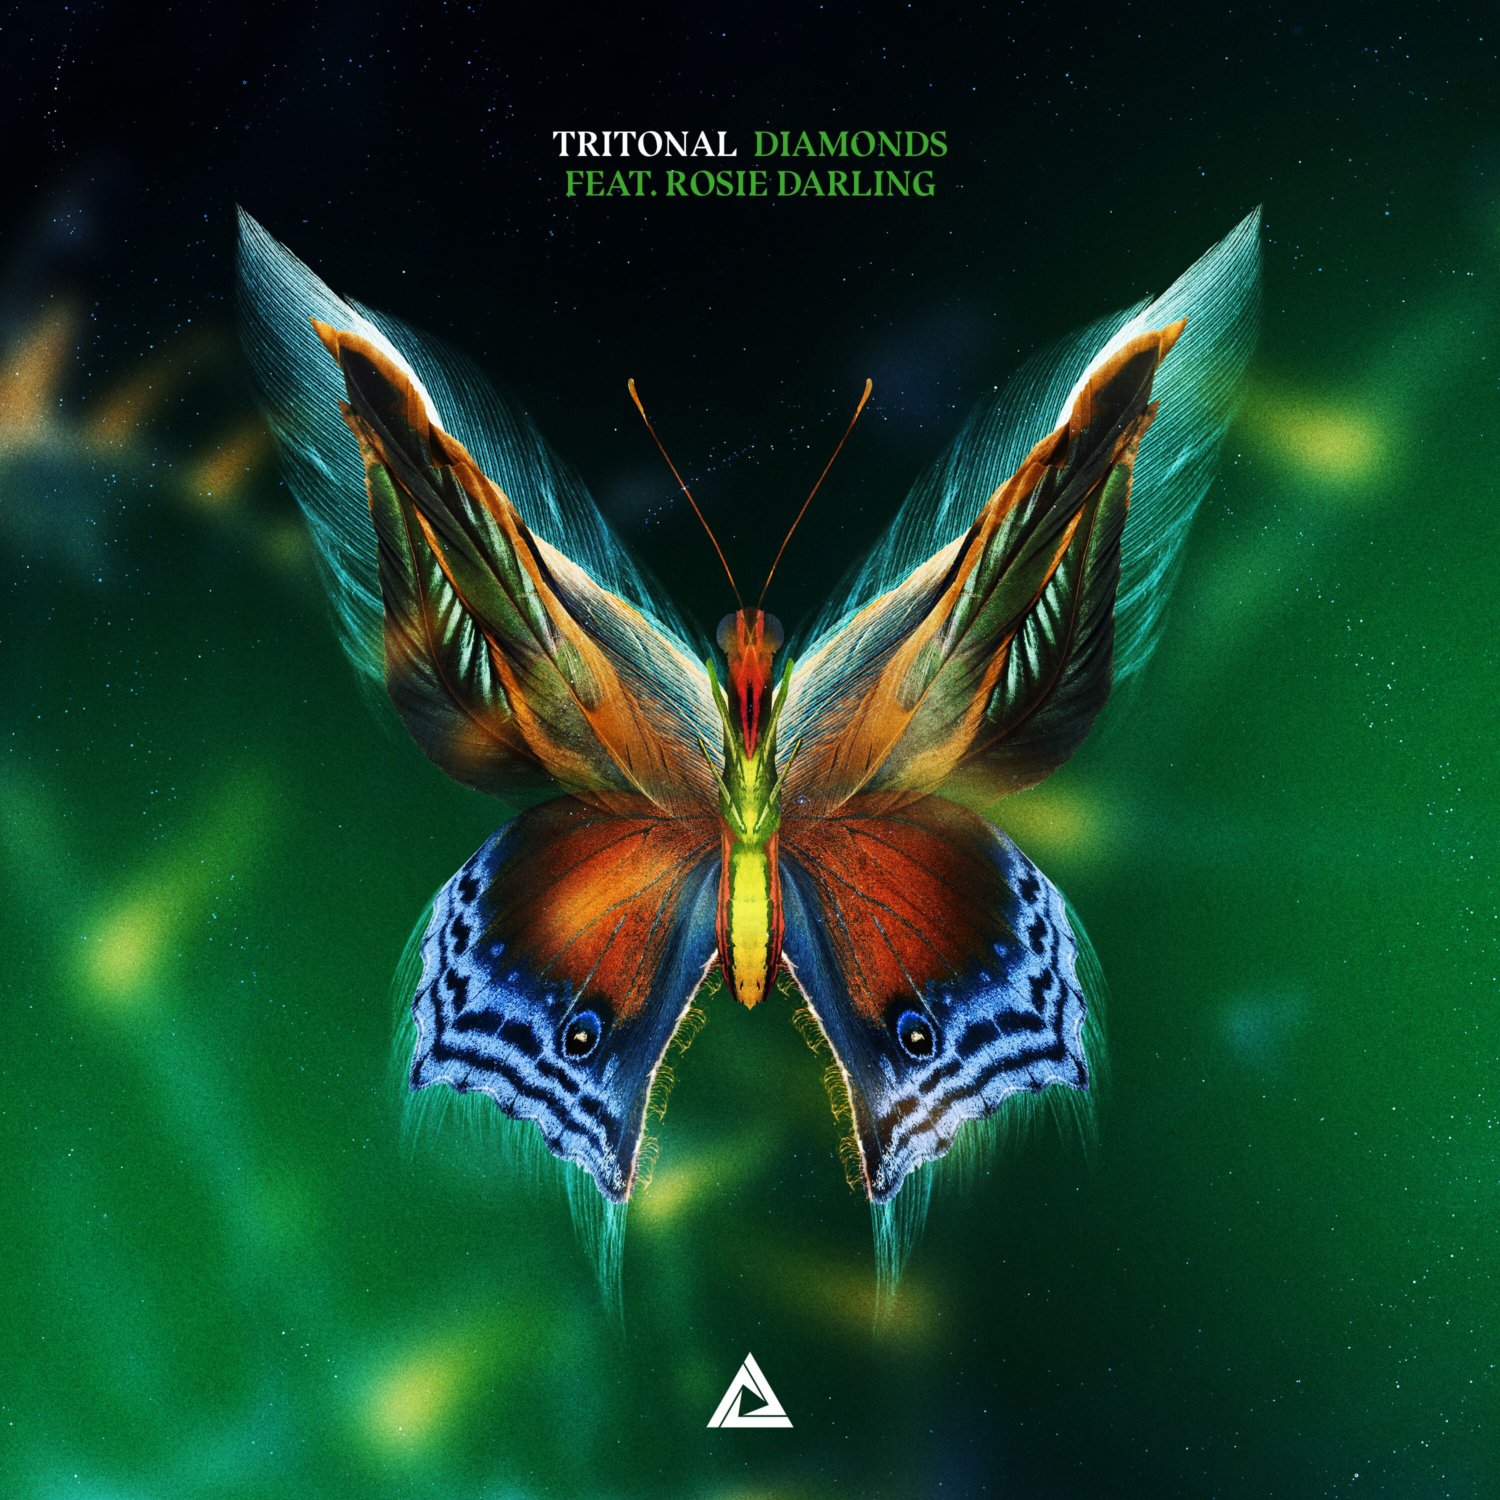 Tritonal releases enamoring new single as they inch closer to their forthcoming album's full releaseTritonal Diamonds Artwork